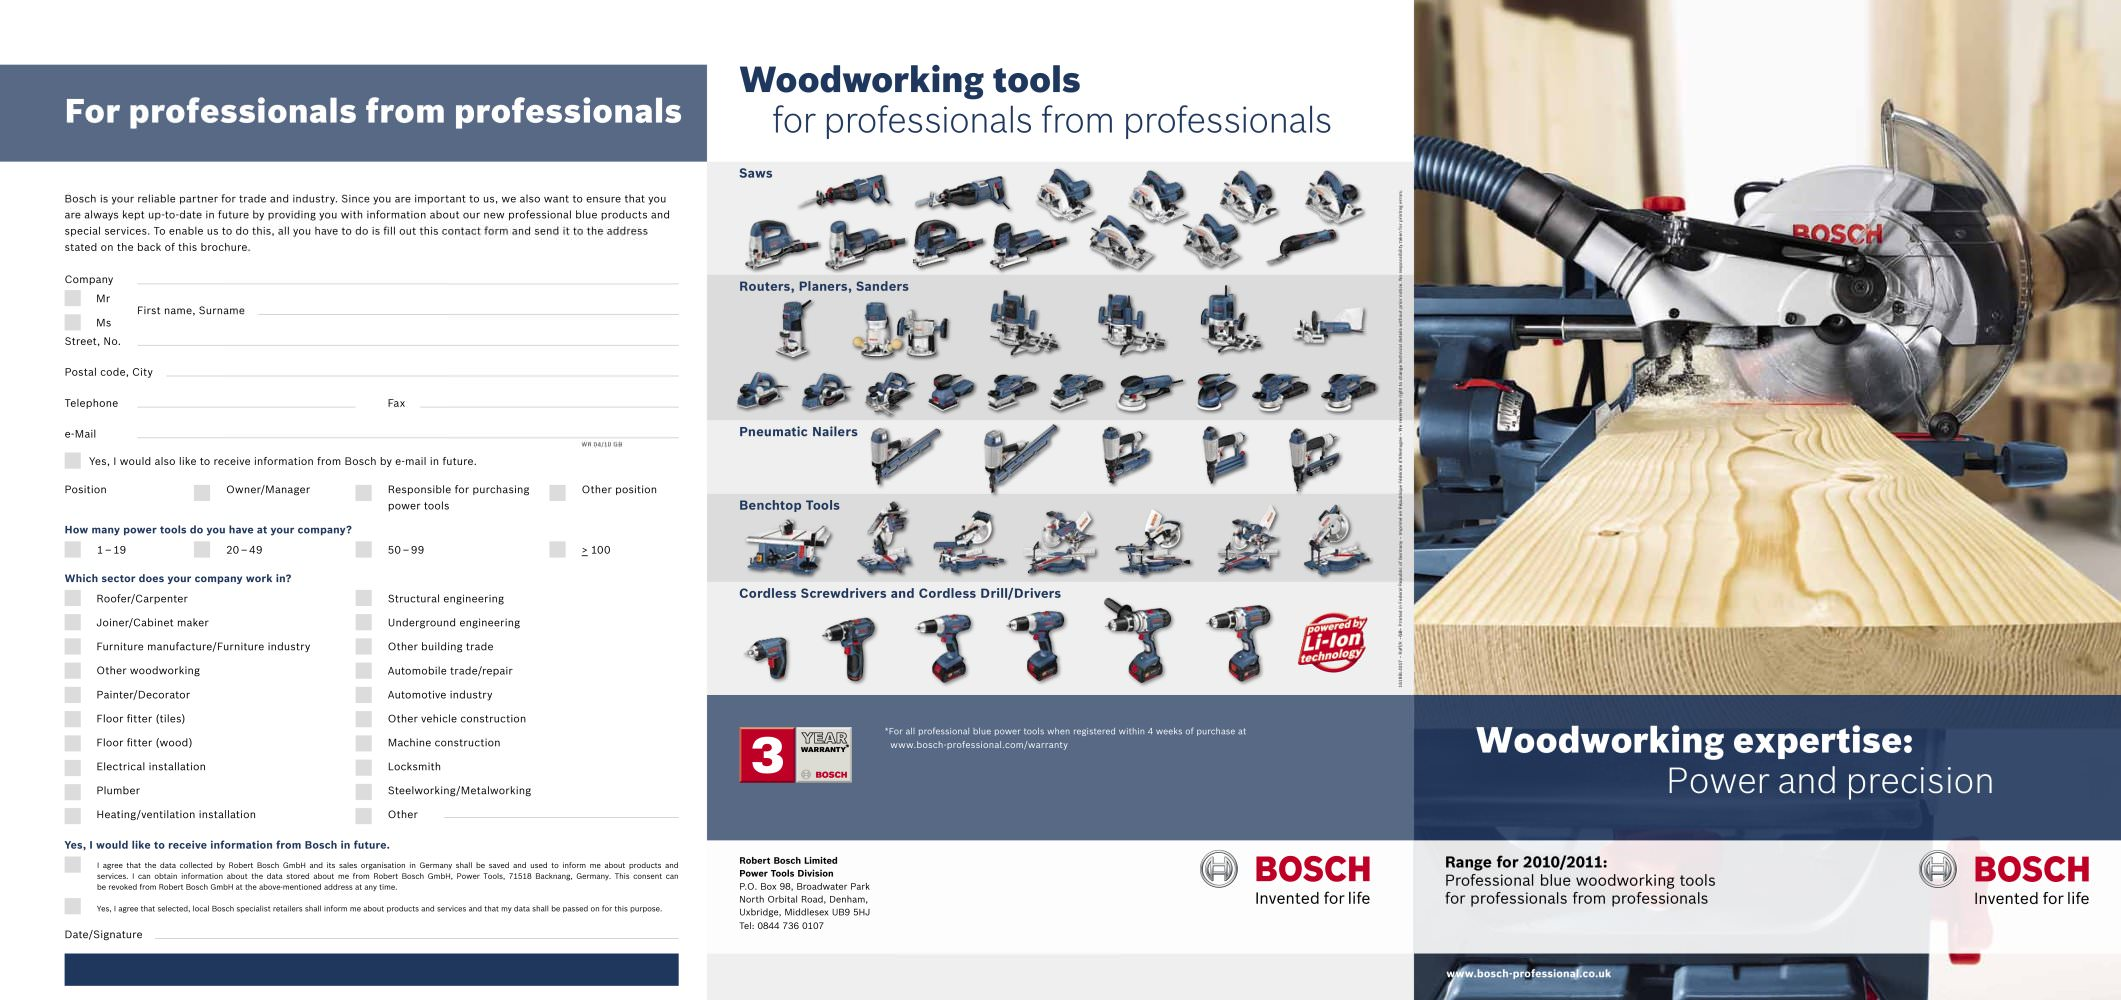 Woodworking Expertise Power And Precision Robert Bosch